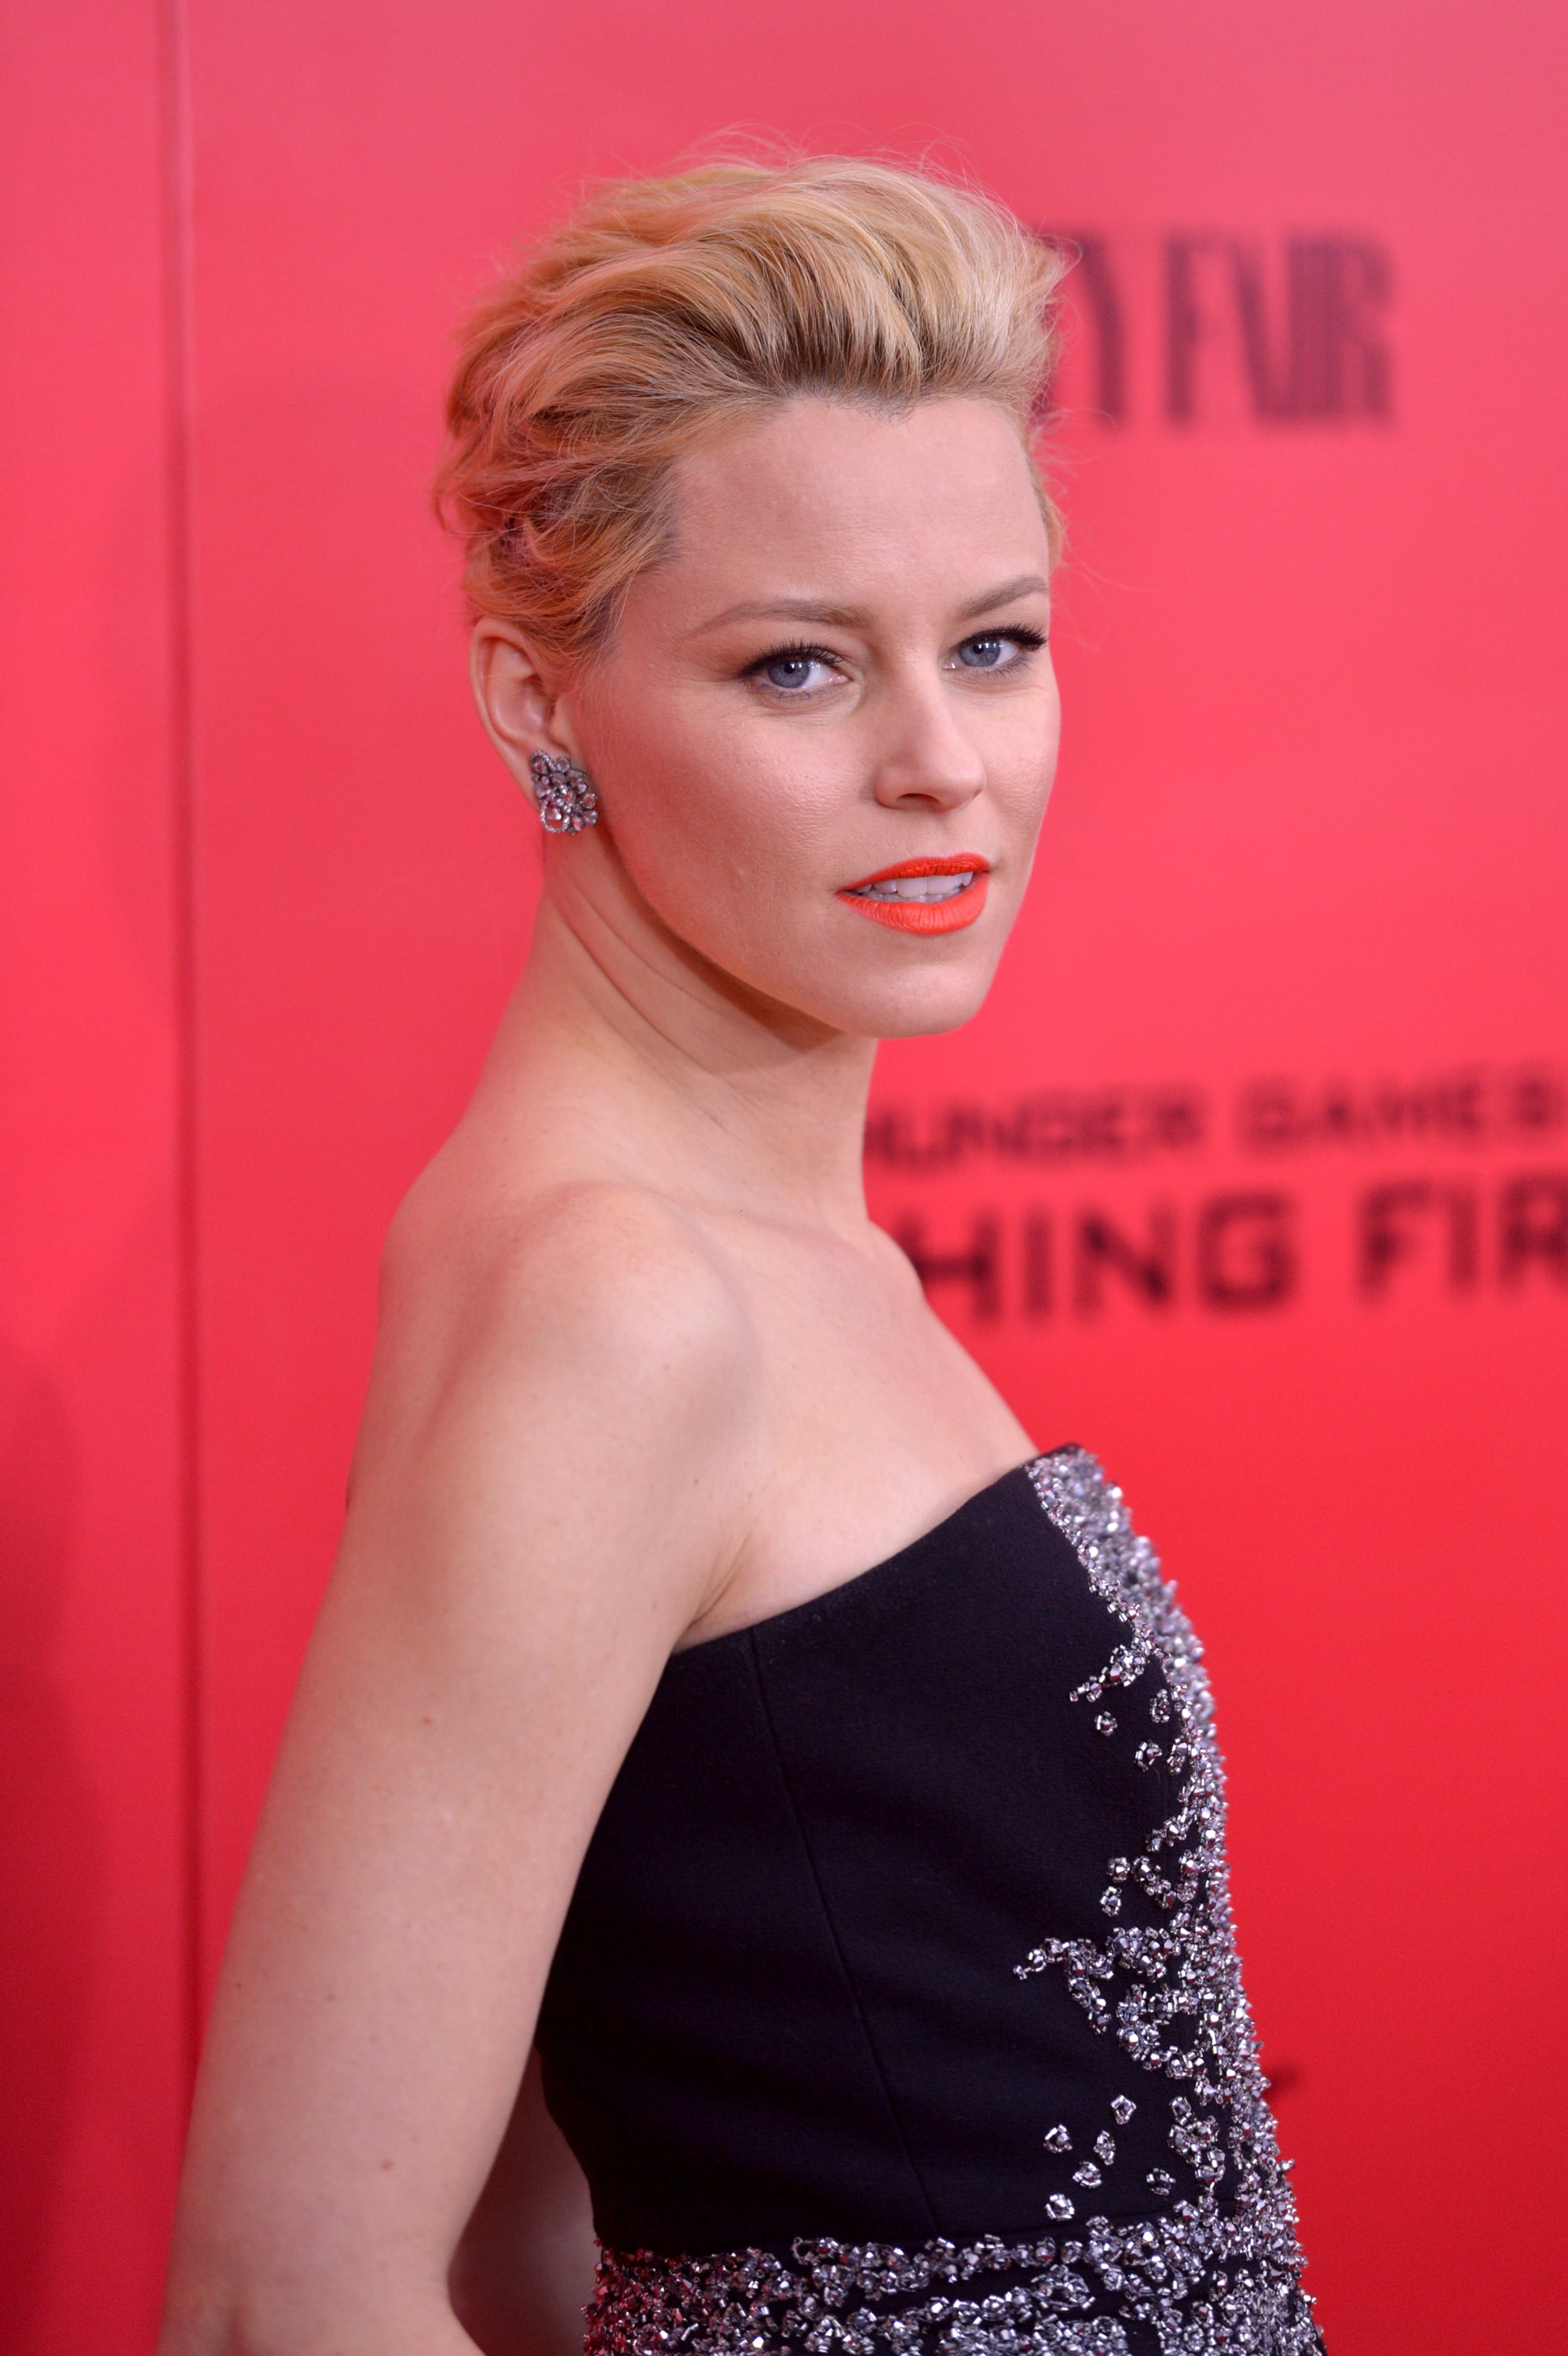 Elizabeth Banks went with an orange lip and pompadour twist for the Hunger Games red carpet in New York.